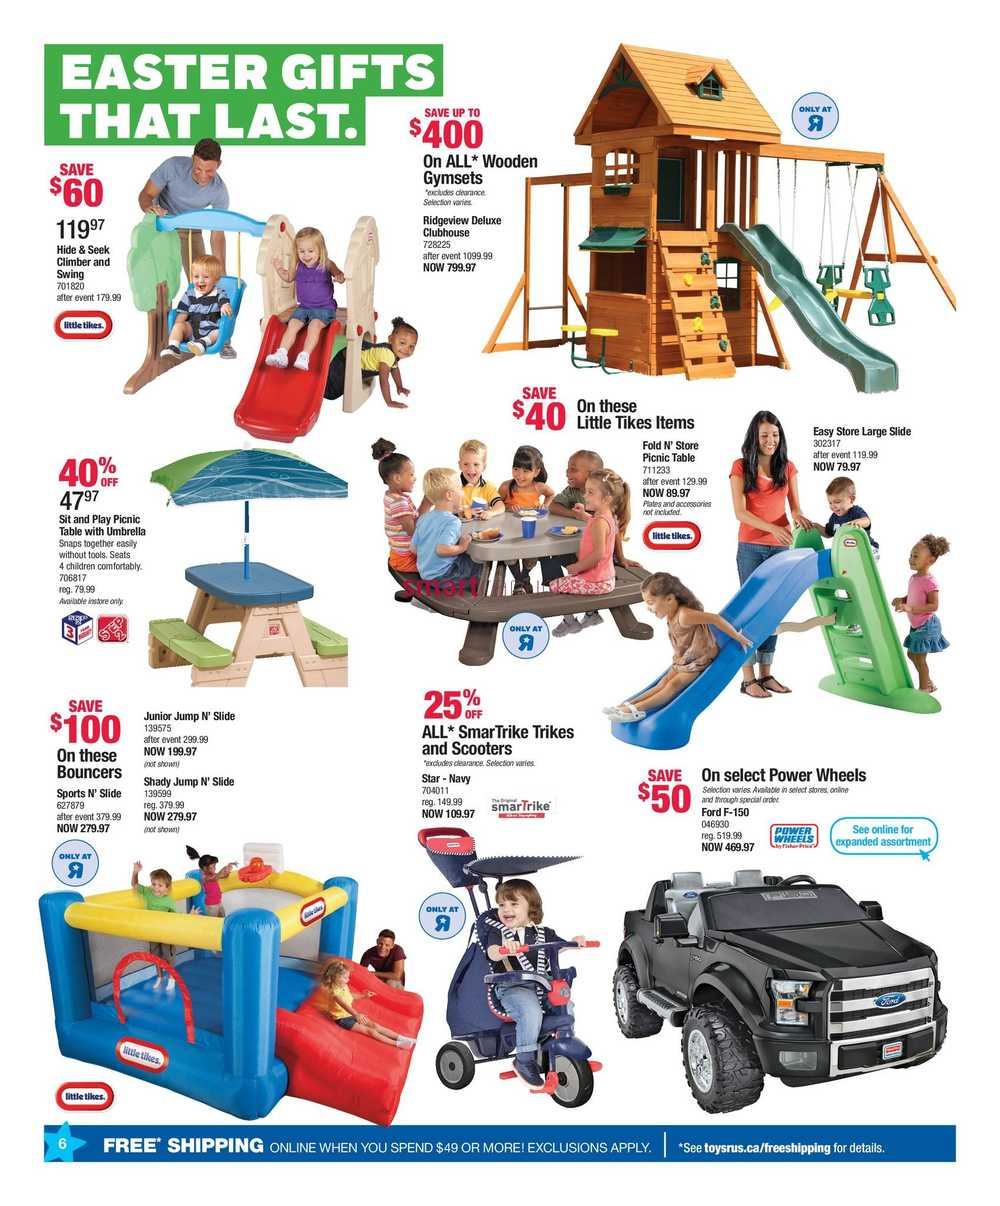 Toys r us flyer march 9 to 15 view single simplified view more toys r us flyers negle Choice Image